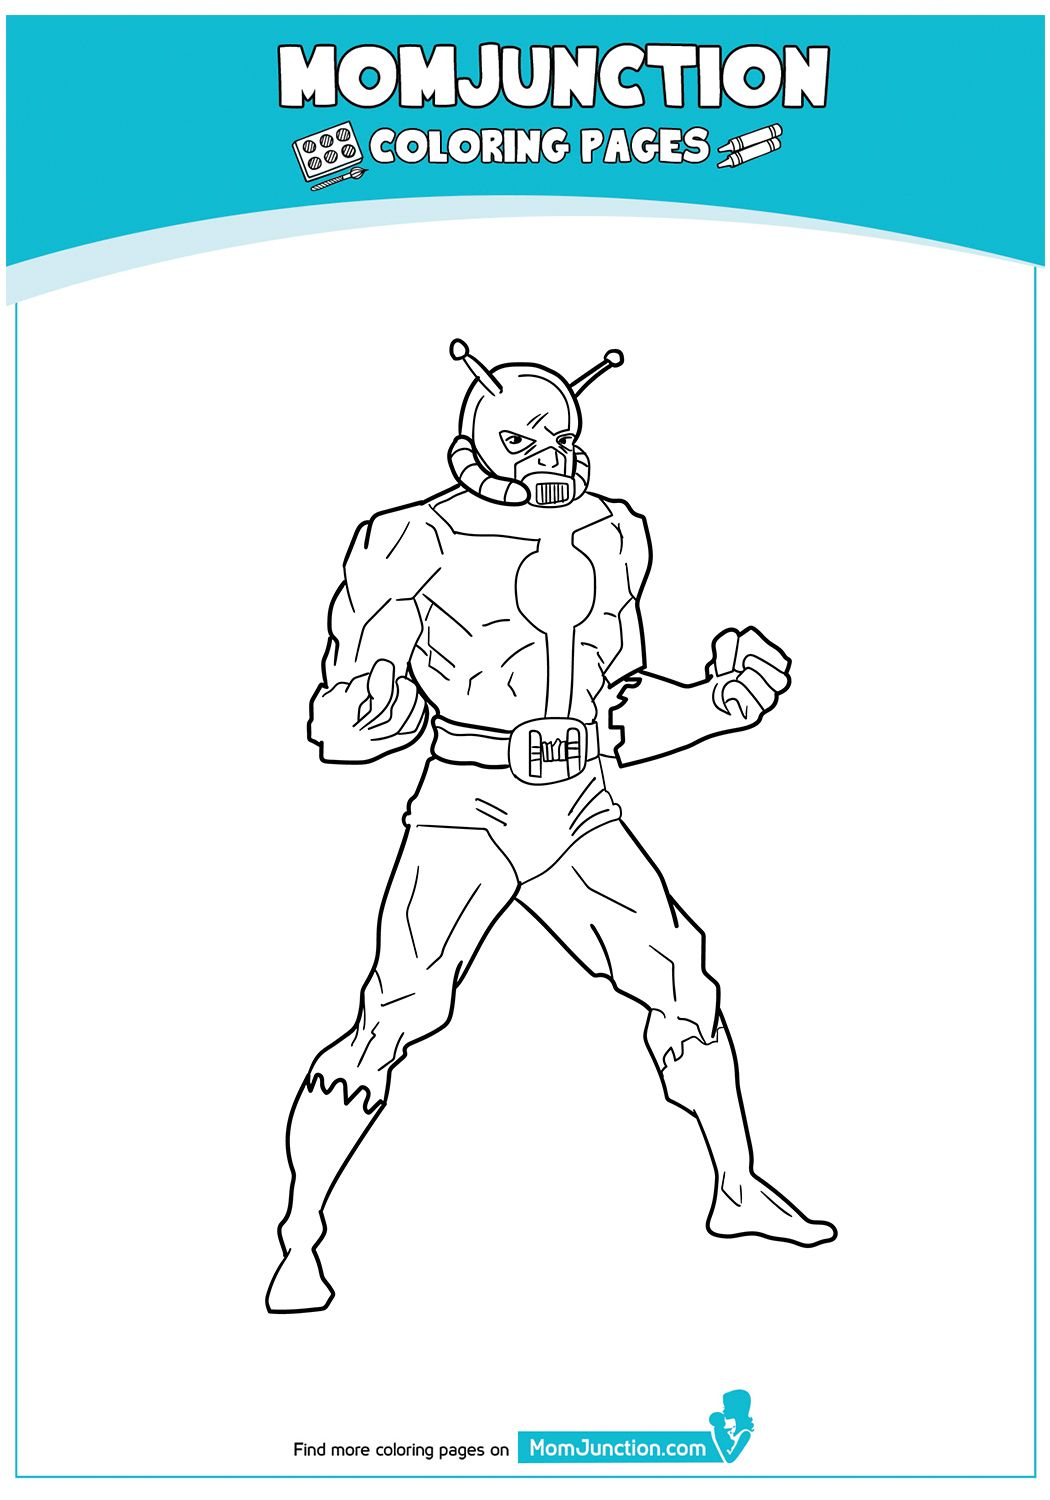 Hank Pym 17 Avengers Coloring Pages Coloring Pages Avengers Coloring